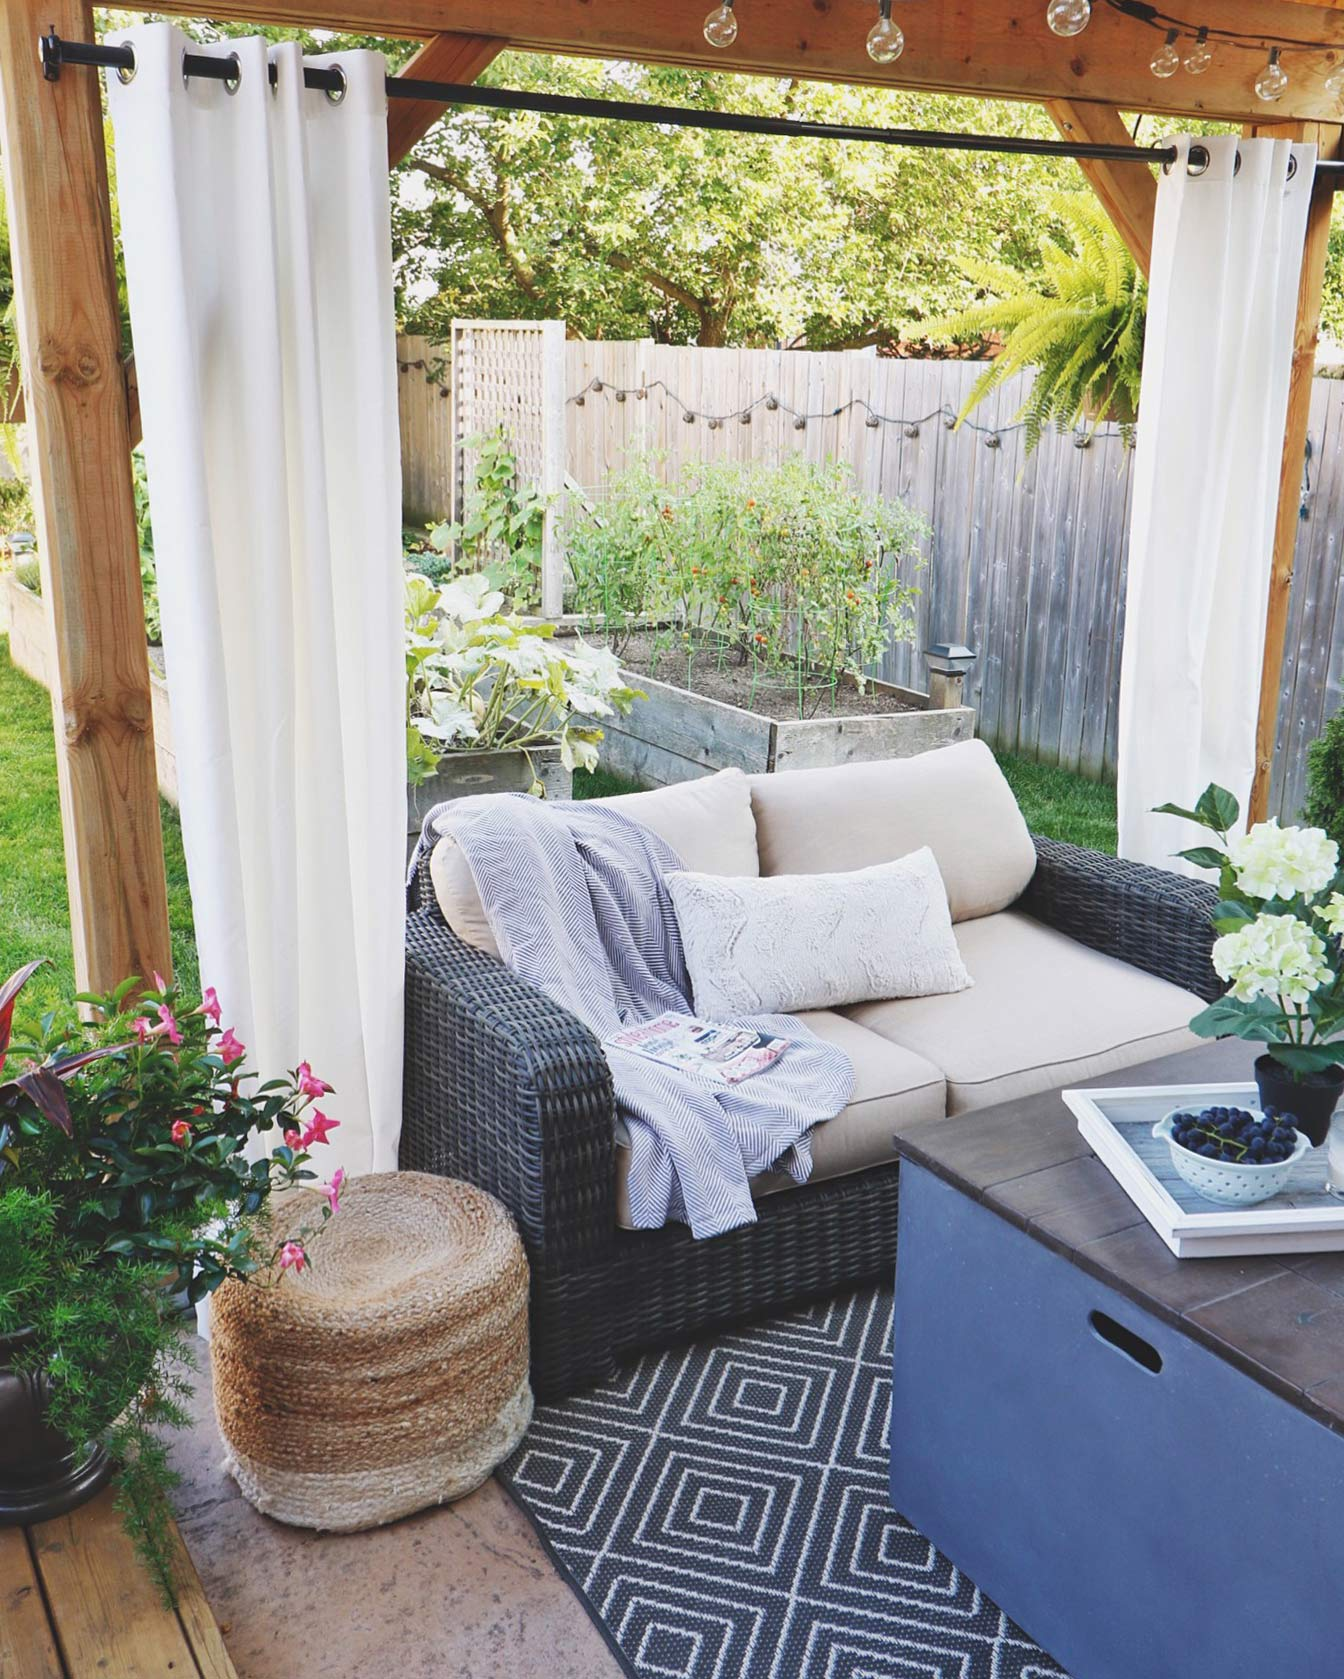 3 Home Decor Trends For Spring Brittany Stager: My Daily Randomness